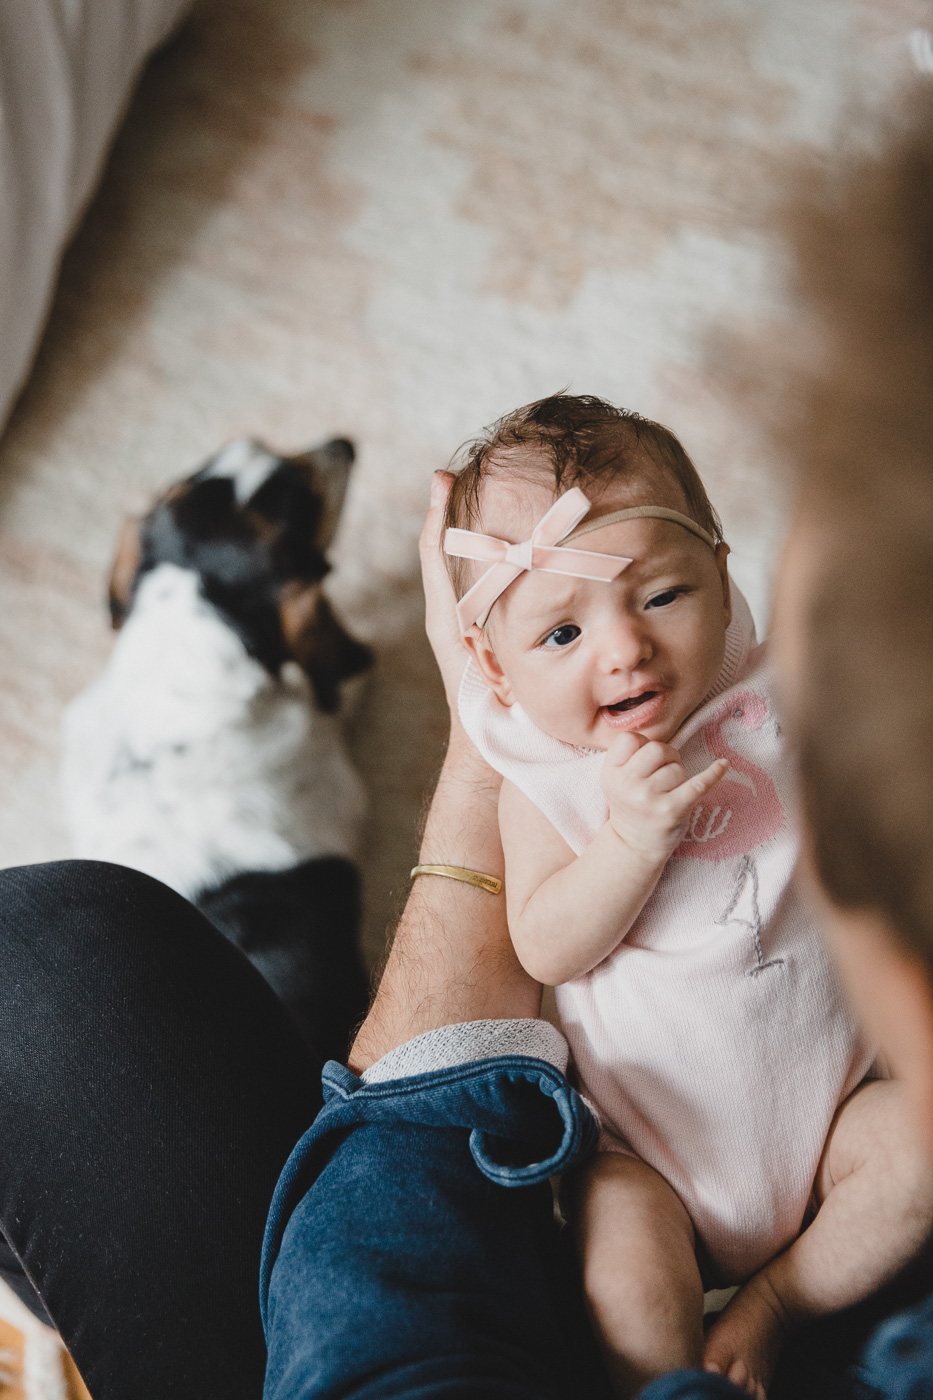 Authentic-Connection-Newborn-Family-Photography-San-Francisco-Po